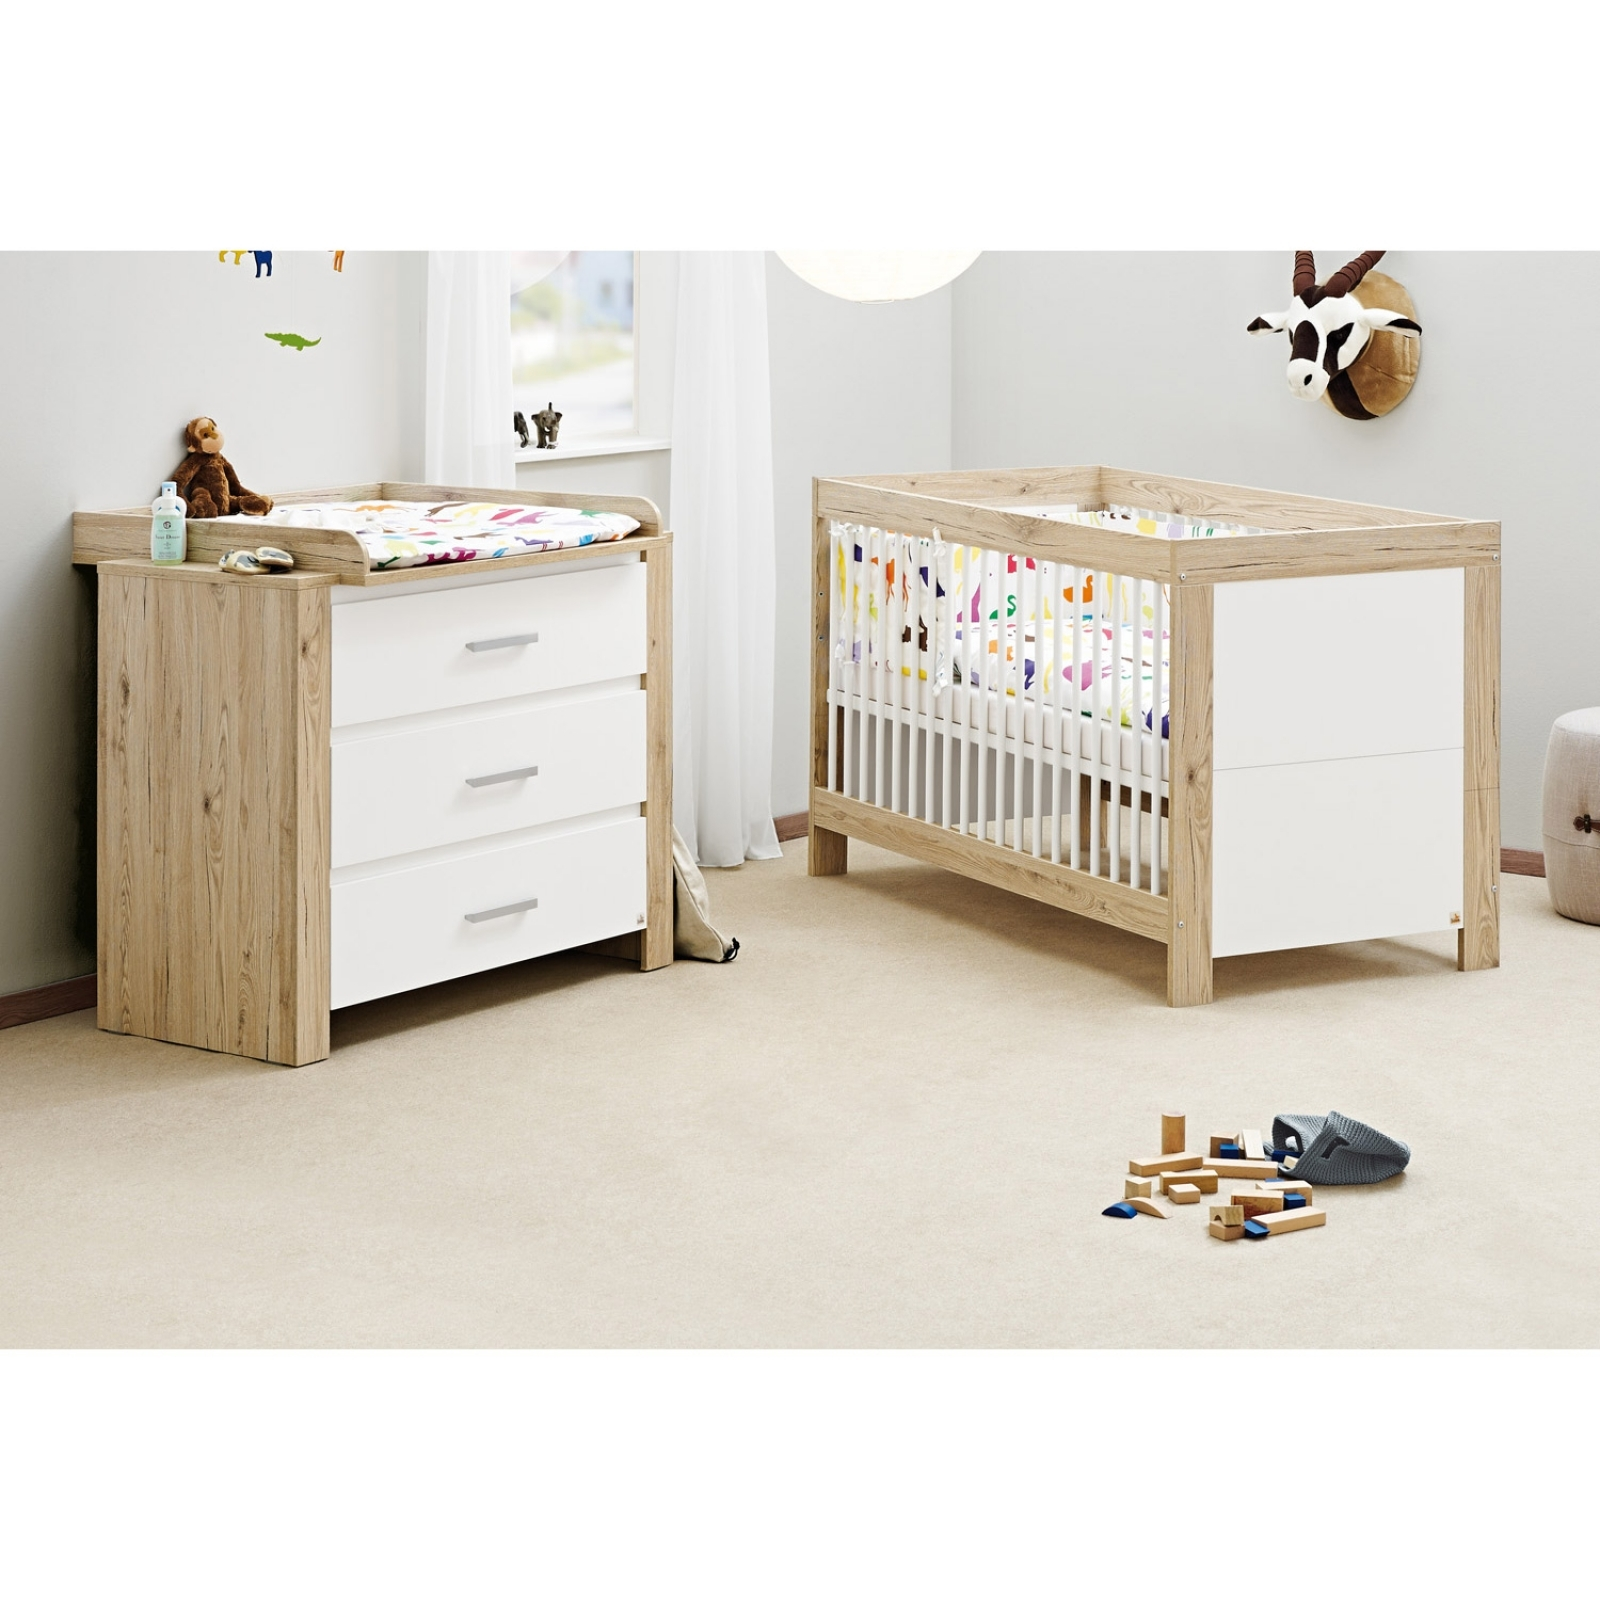 chambre bebe bois blanc pr l vement d 39 chantillons et une bonne id e de concevoir. Black Bedroom Furniture Sets. Home Design Ideas